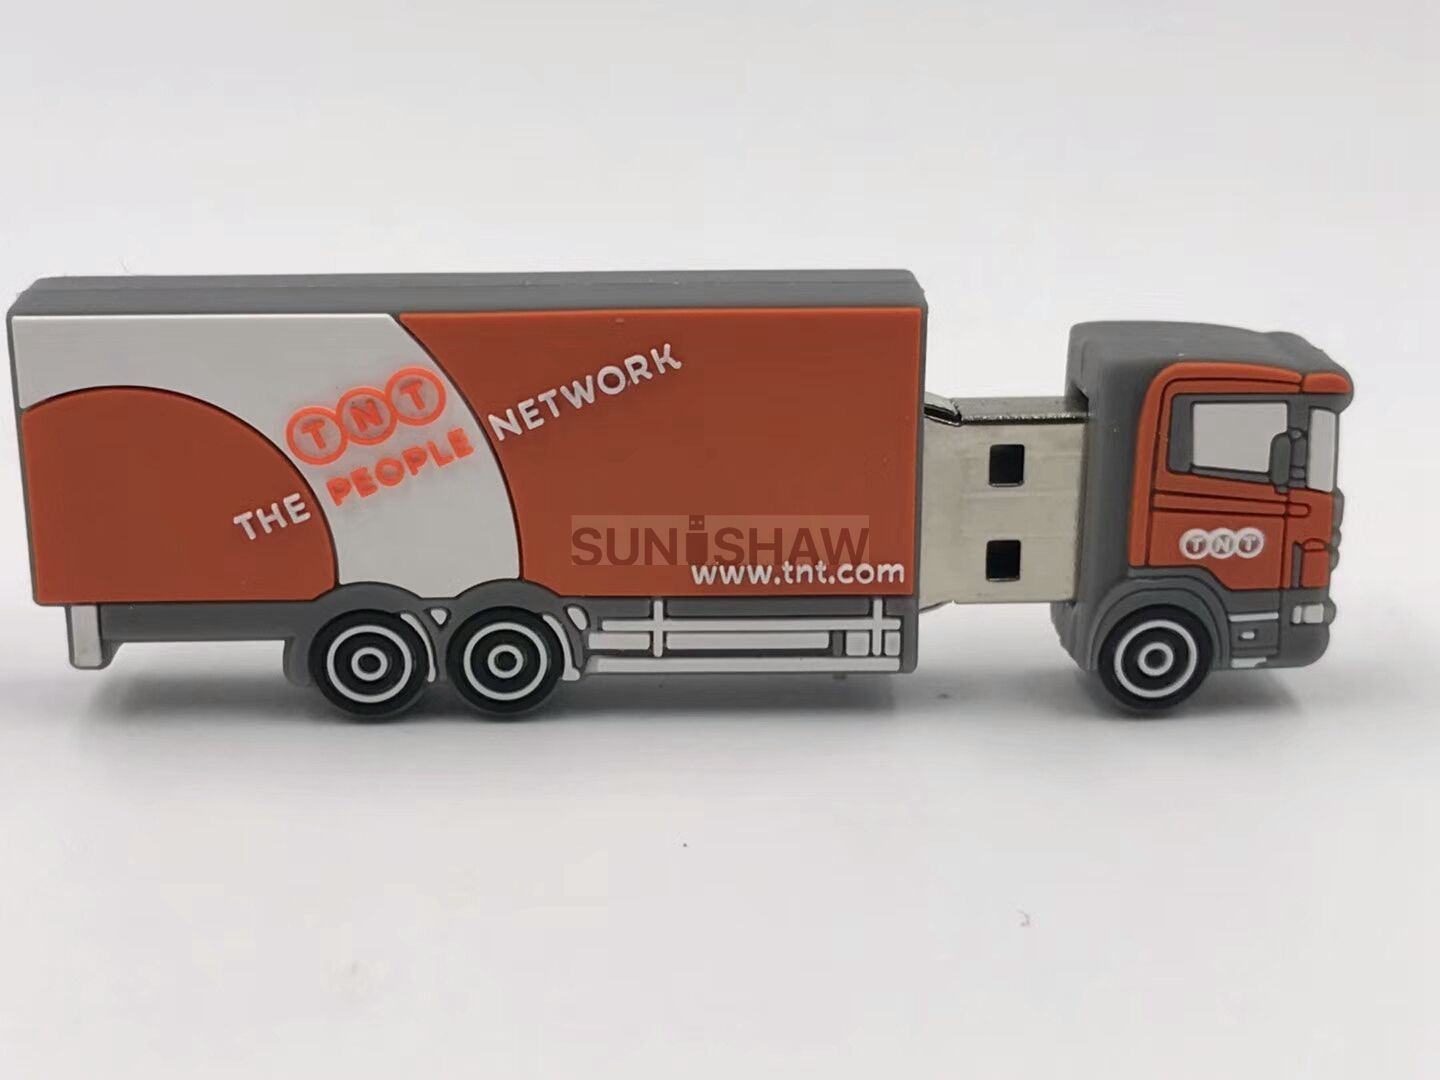 SV-016 Truck shaped pvc usb memory for TNT with branded logo